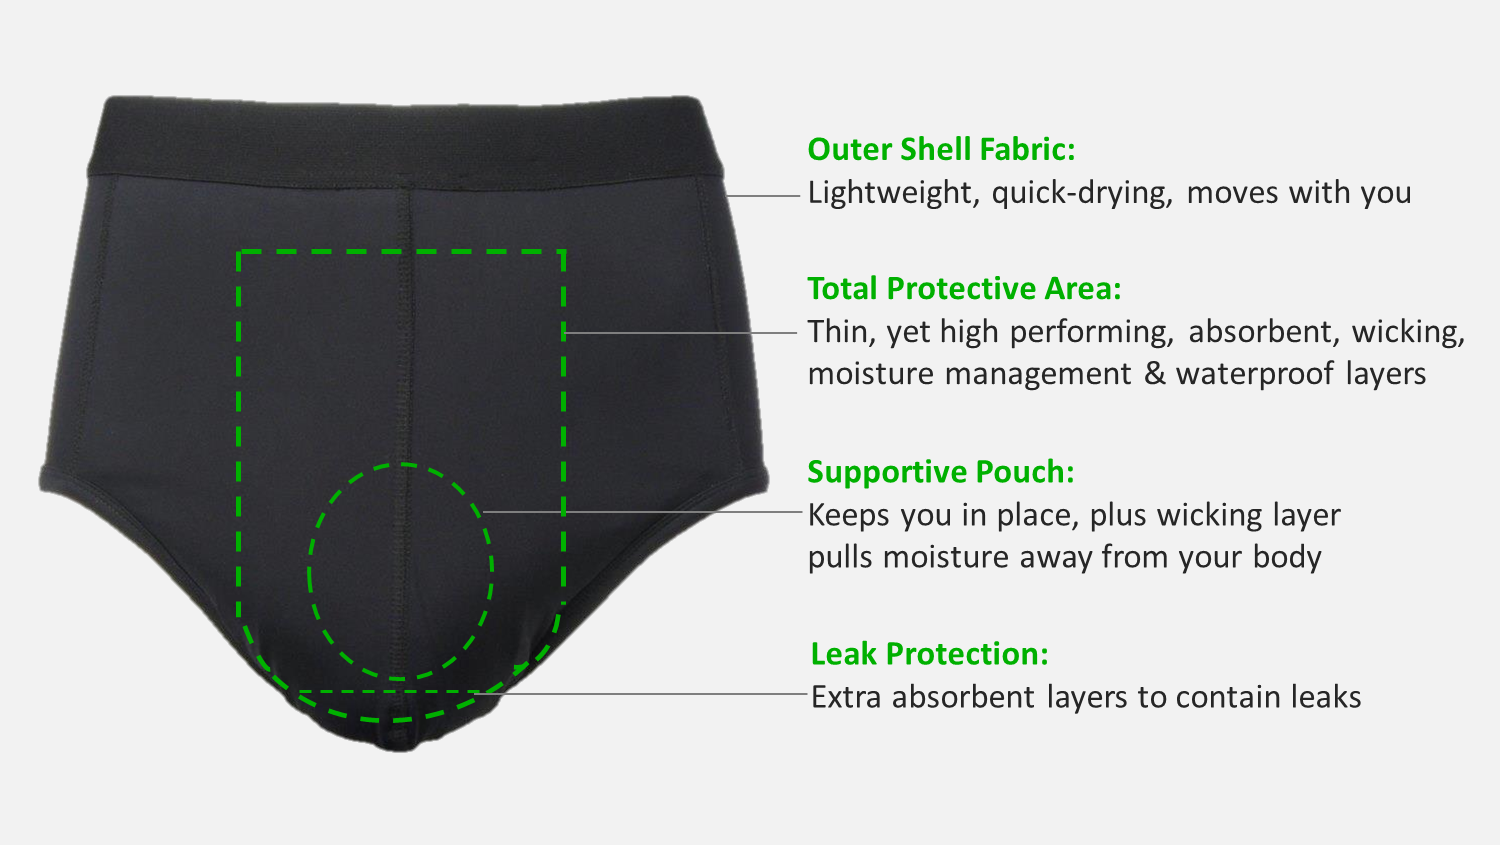 Zorbies Mens Incontinence Sport Brief features - Breathable shell, supportive pouch, protective area